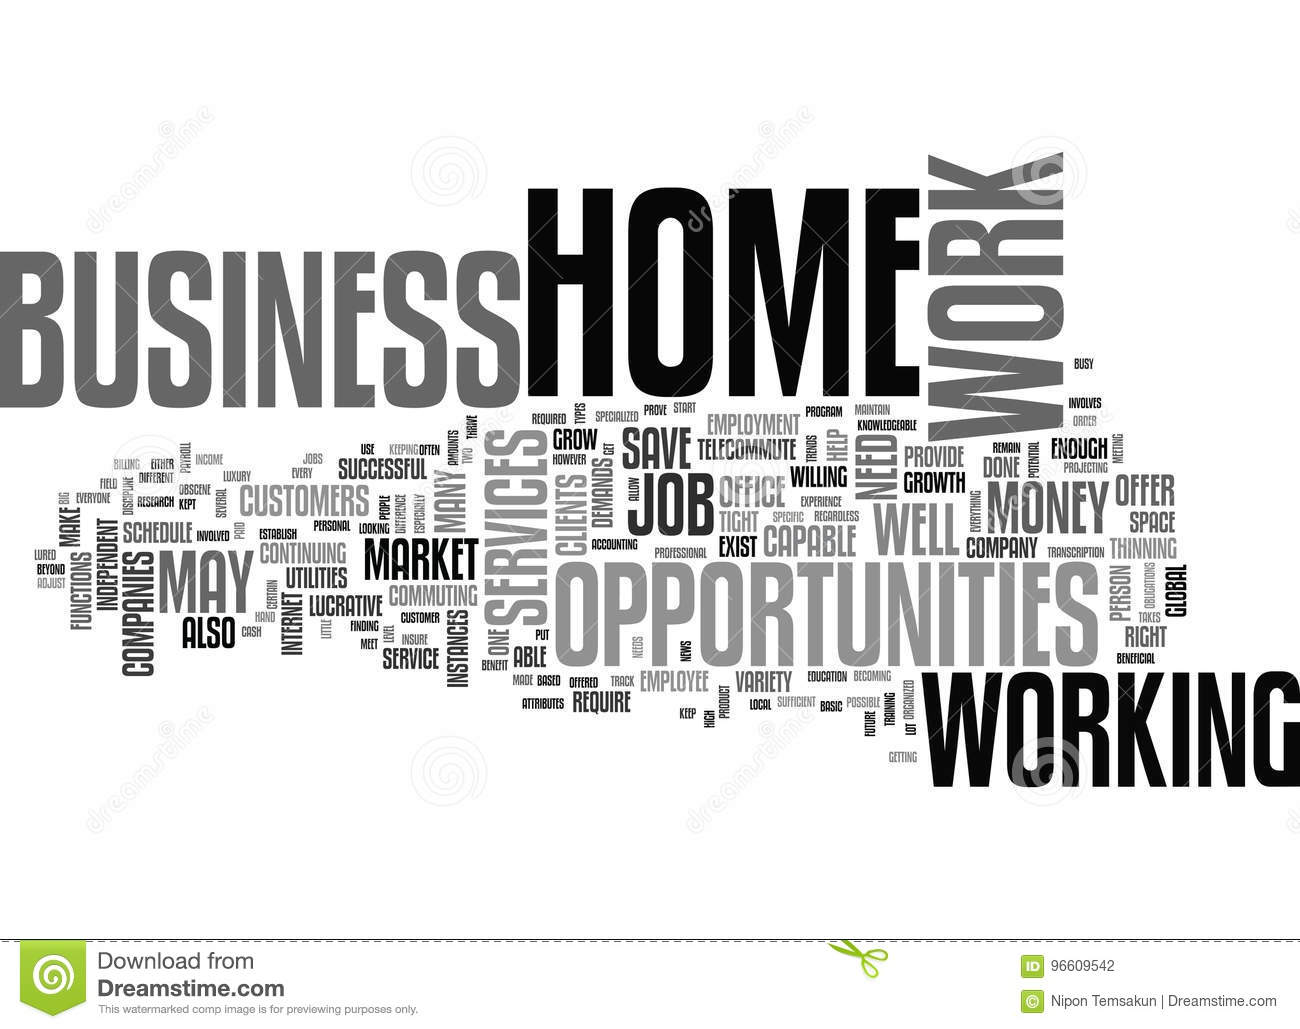 Work At Home Business Opportunities Thrive In Tight Job Market Word ...